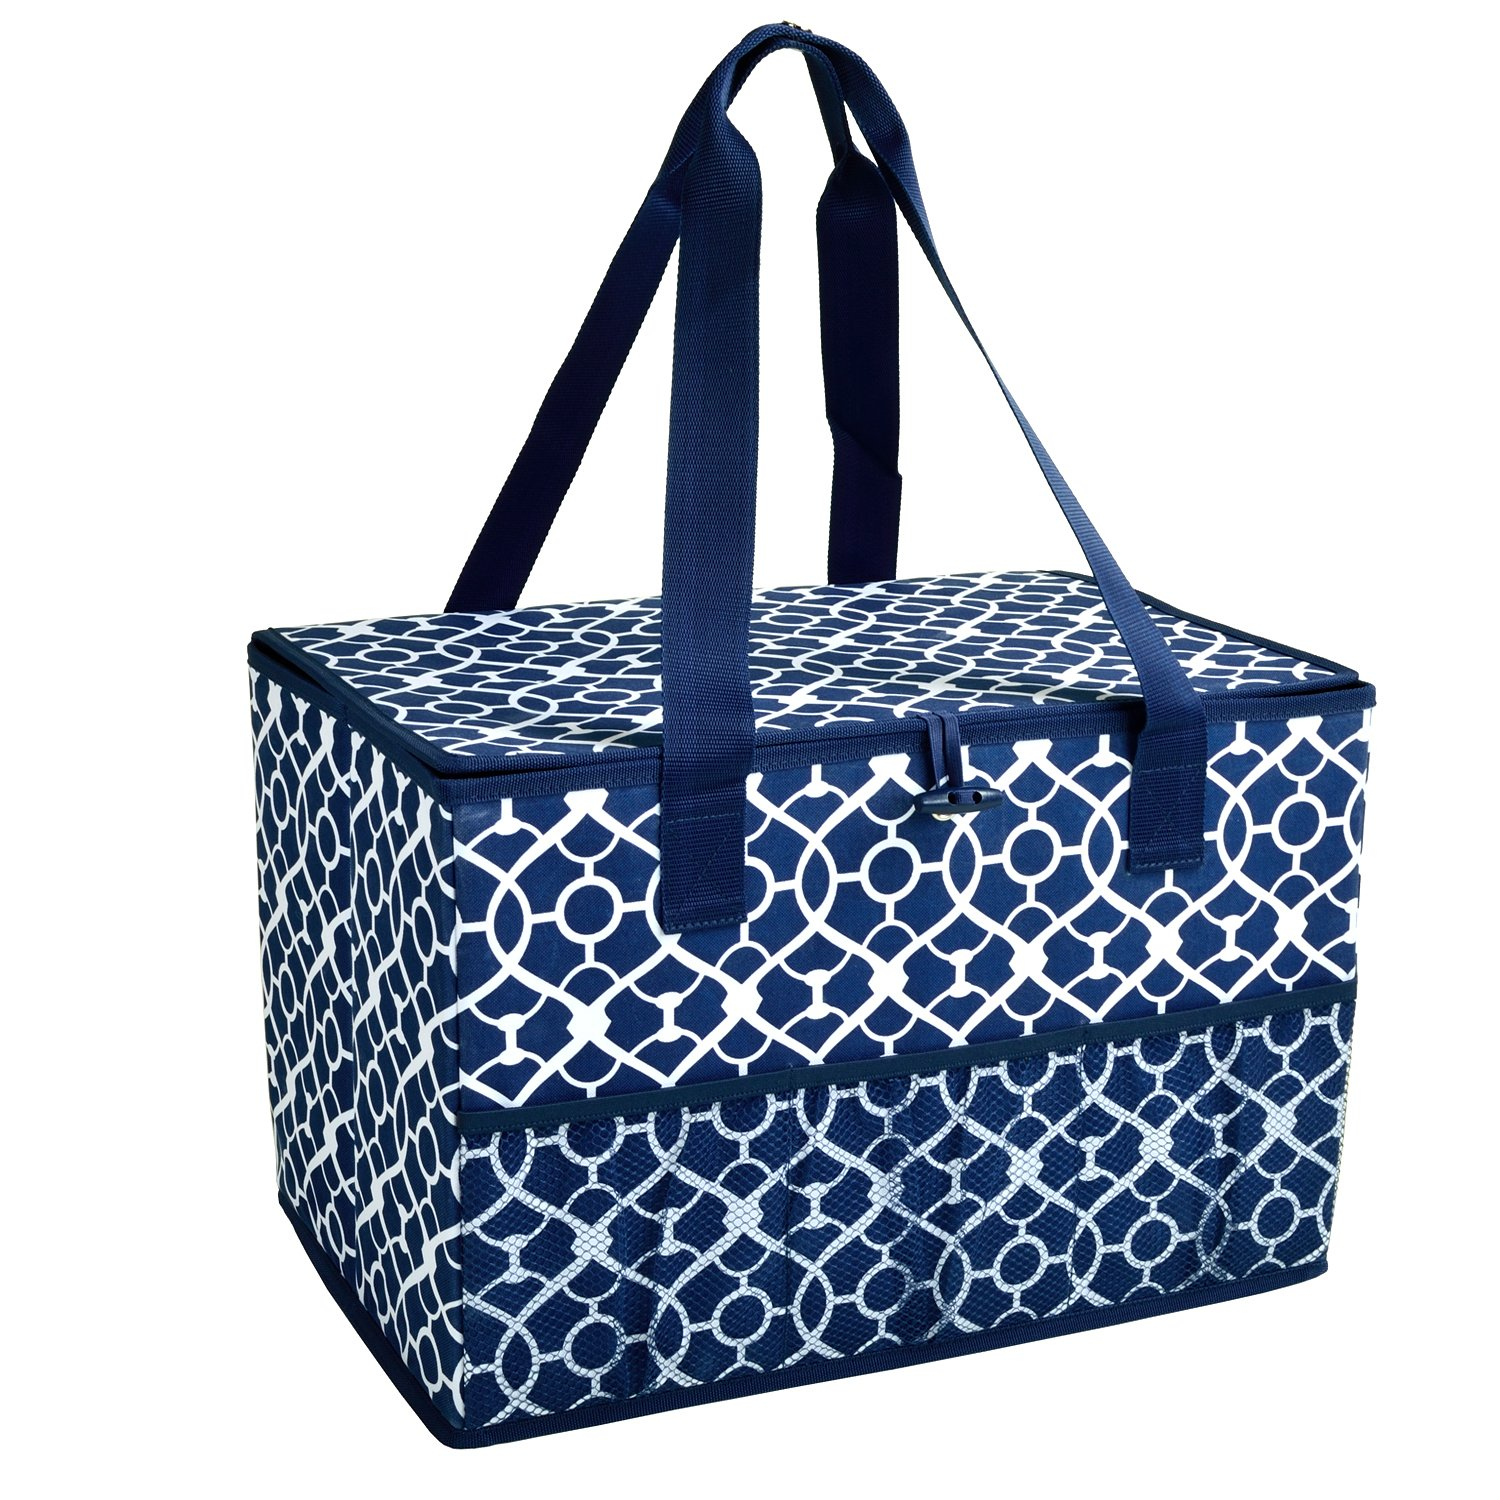 Picnic at Ascot Collapsible Storage Container/Organizer for Home and Trunk - Designed & Quality Approved in the USA by Picnic at Ascot